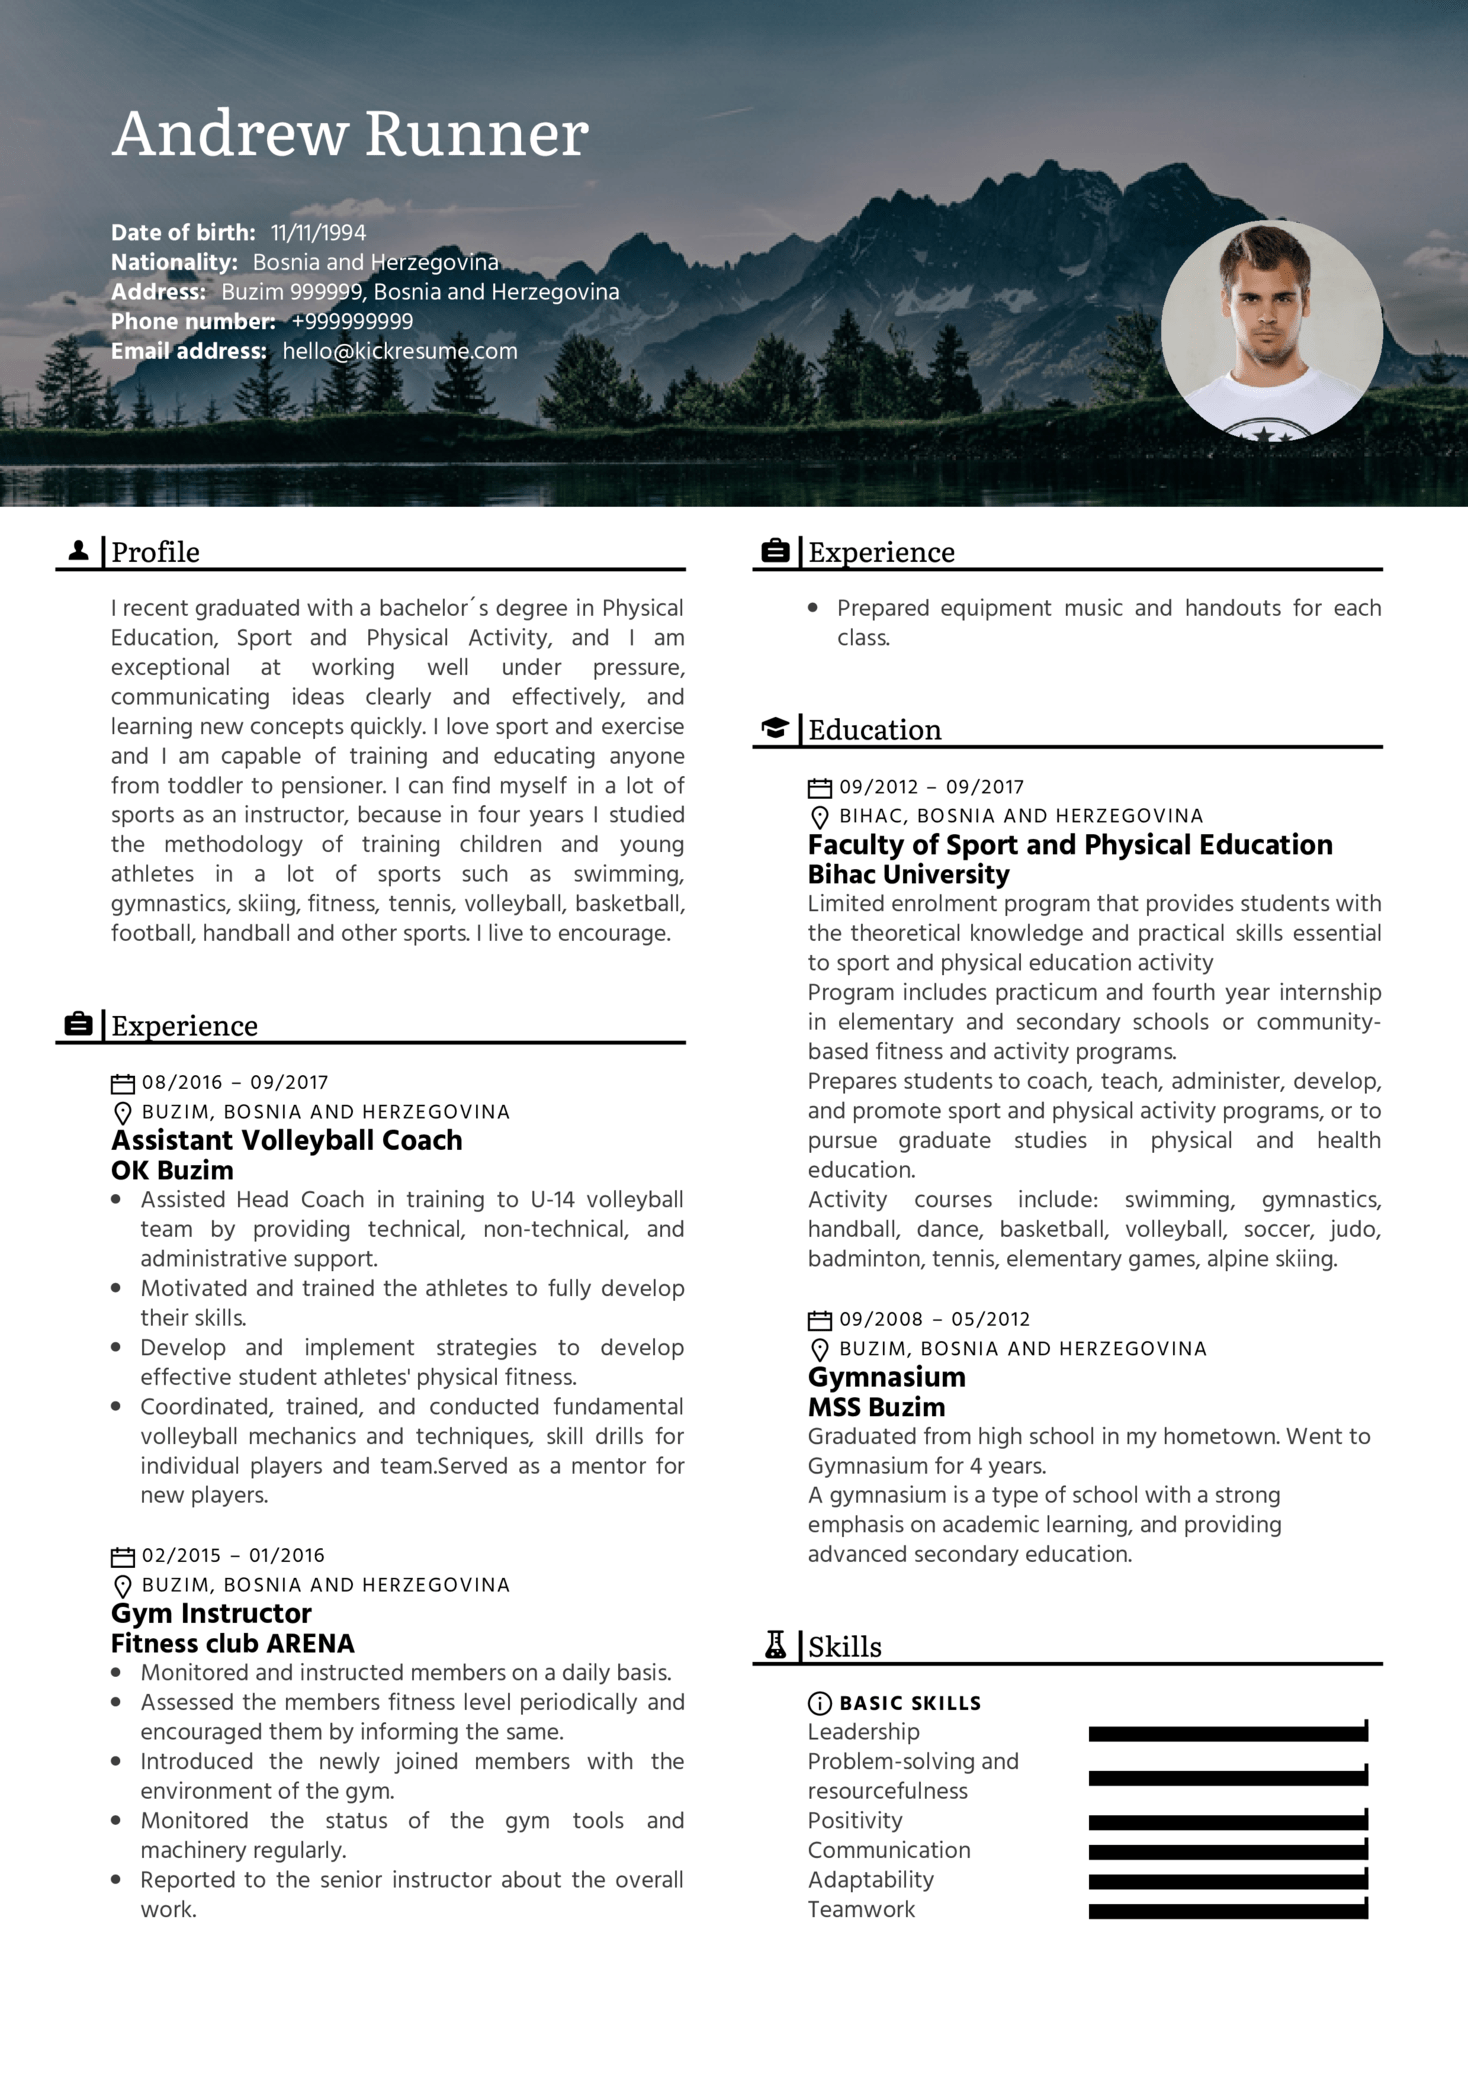 Fitness Instructor, Assistant Coach Resume Sample (Part 1)